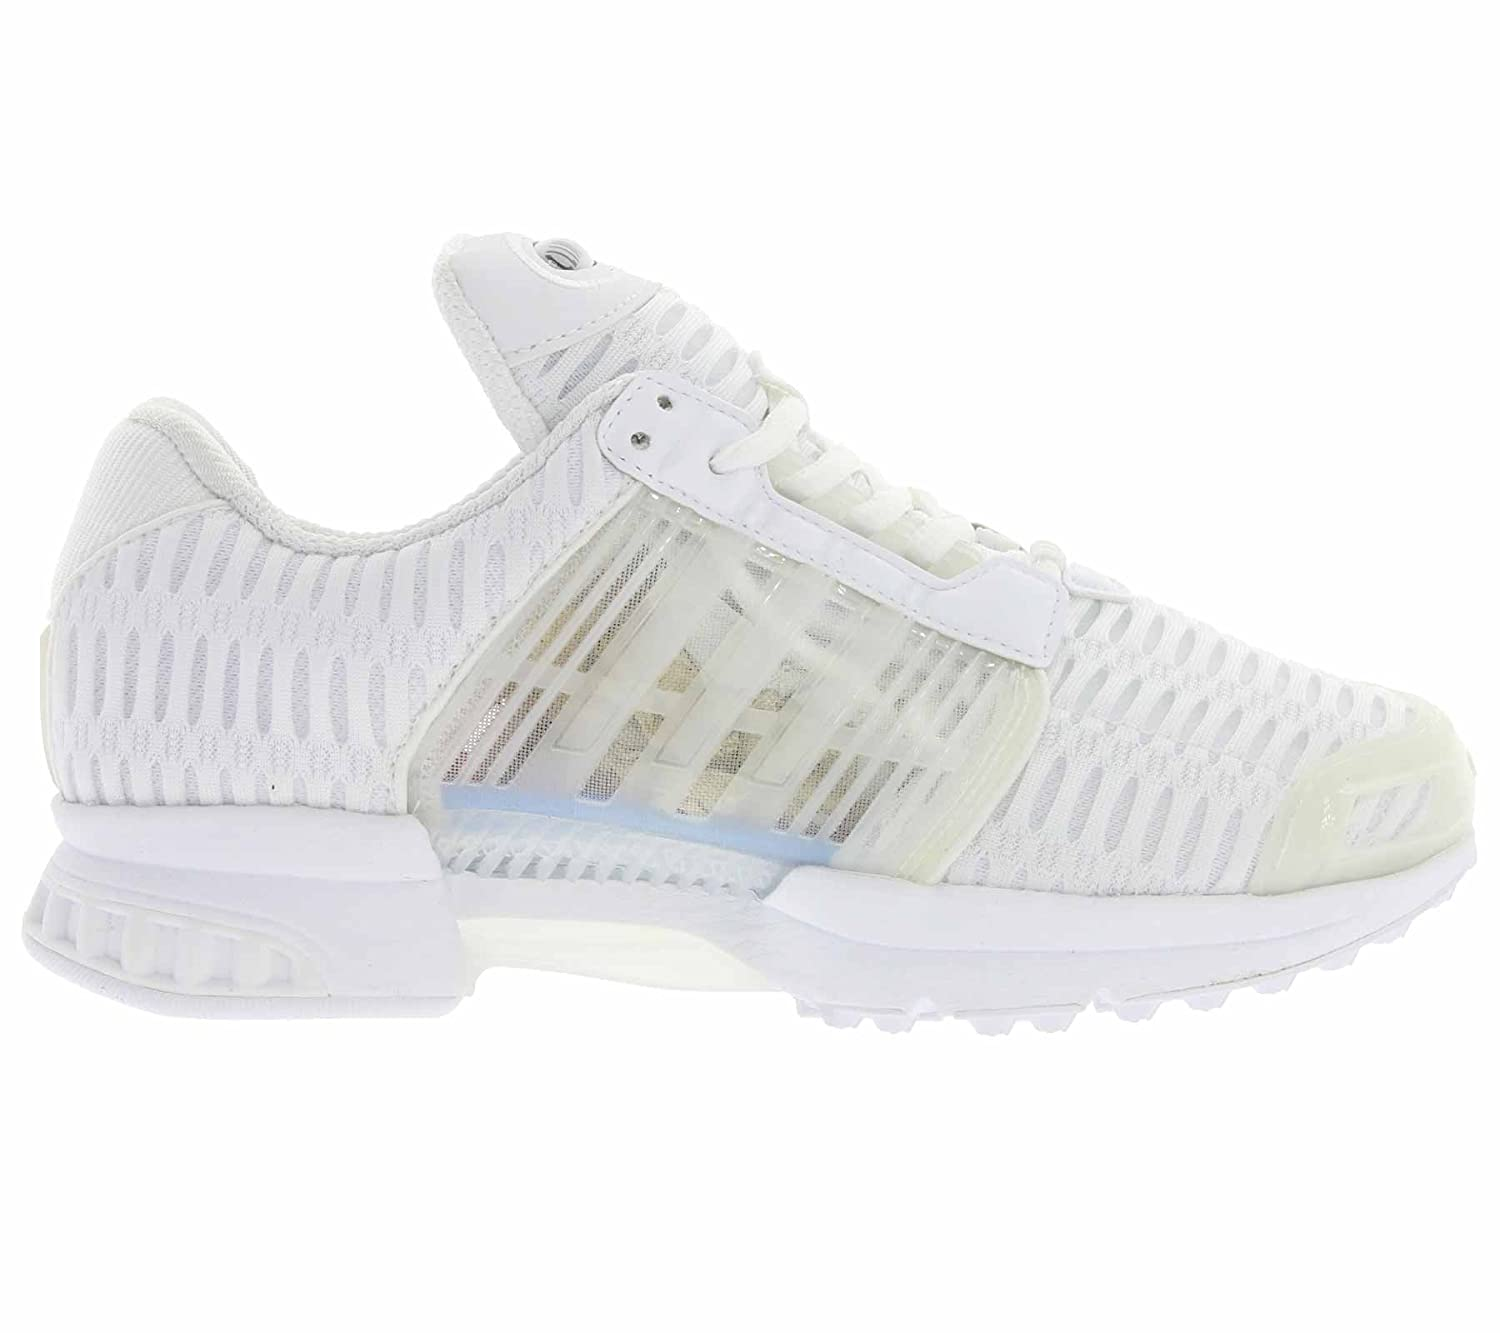 buy popular 8bc0a 65bcb adidas Junior Boys Originals Climacool 1 Trainers in White- Climacool  Technology